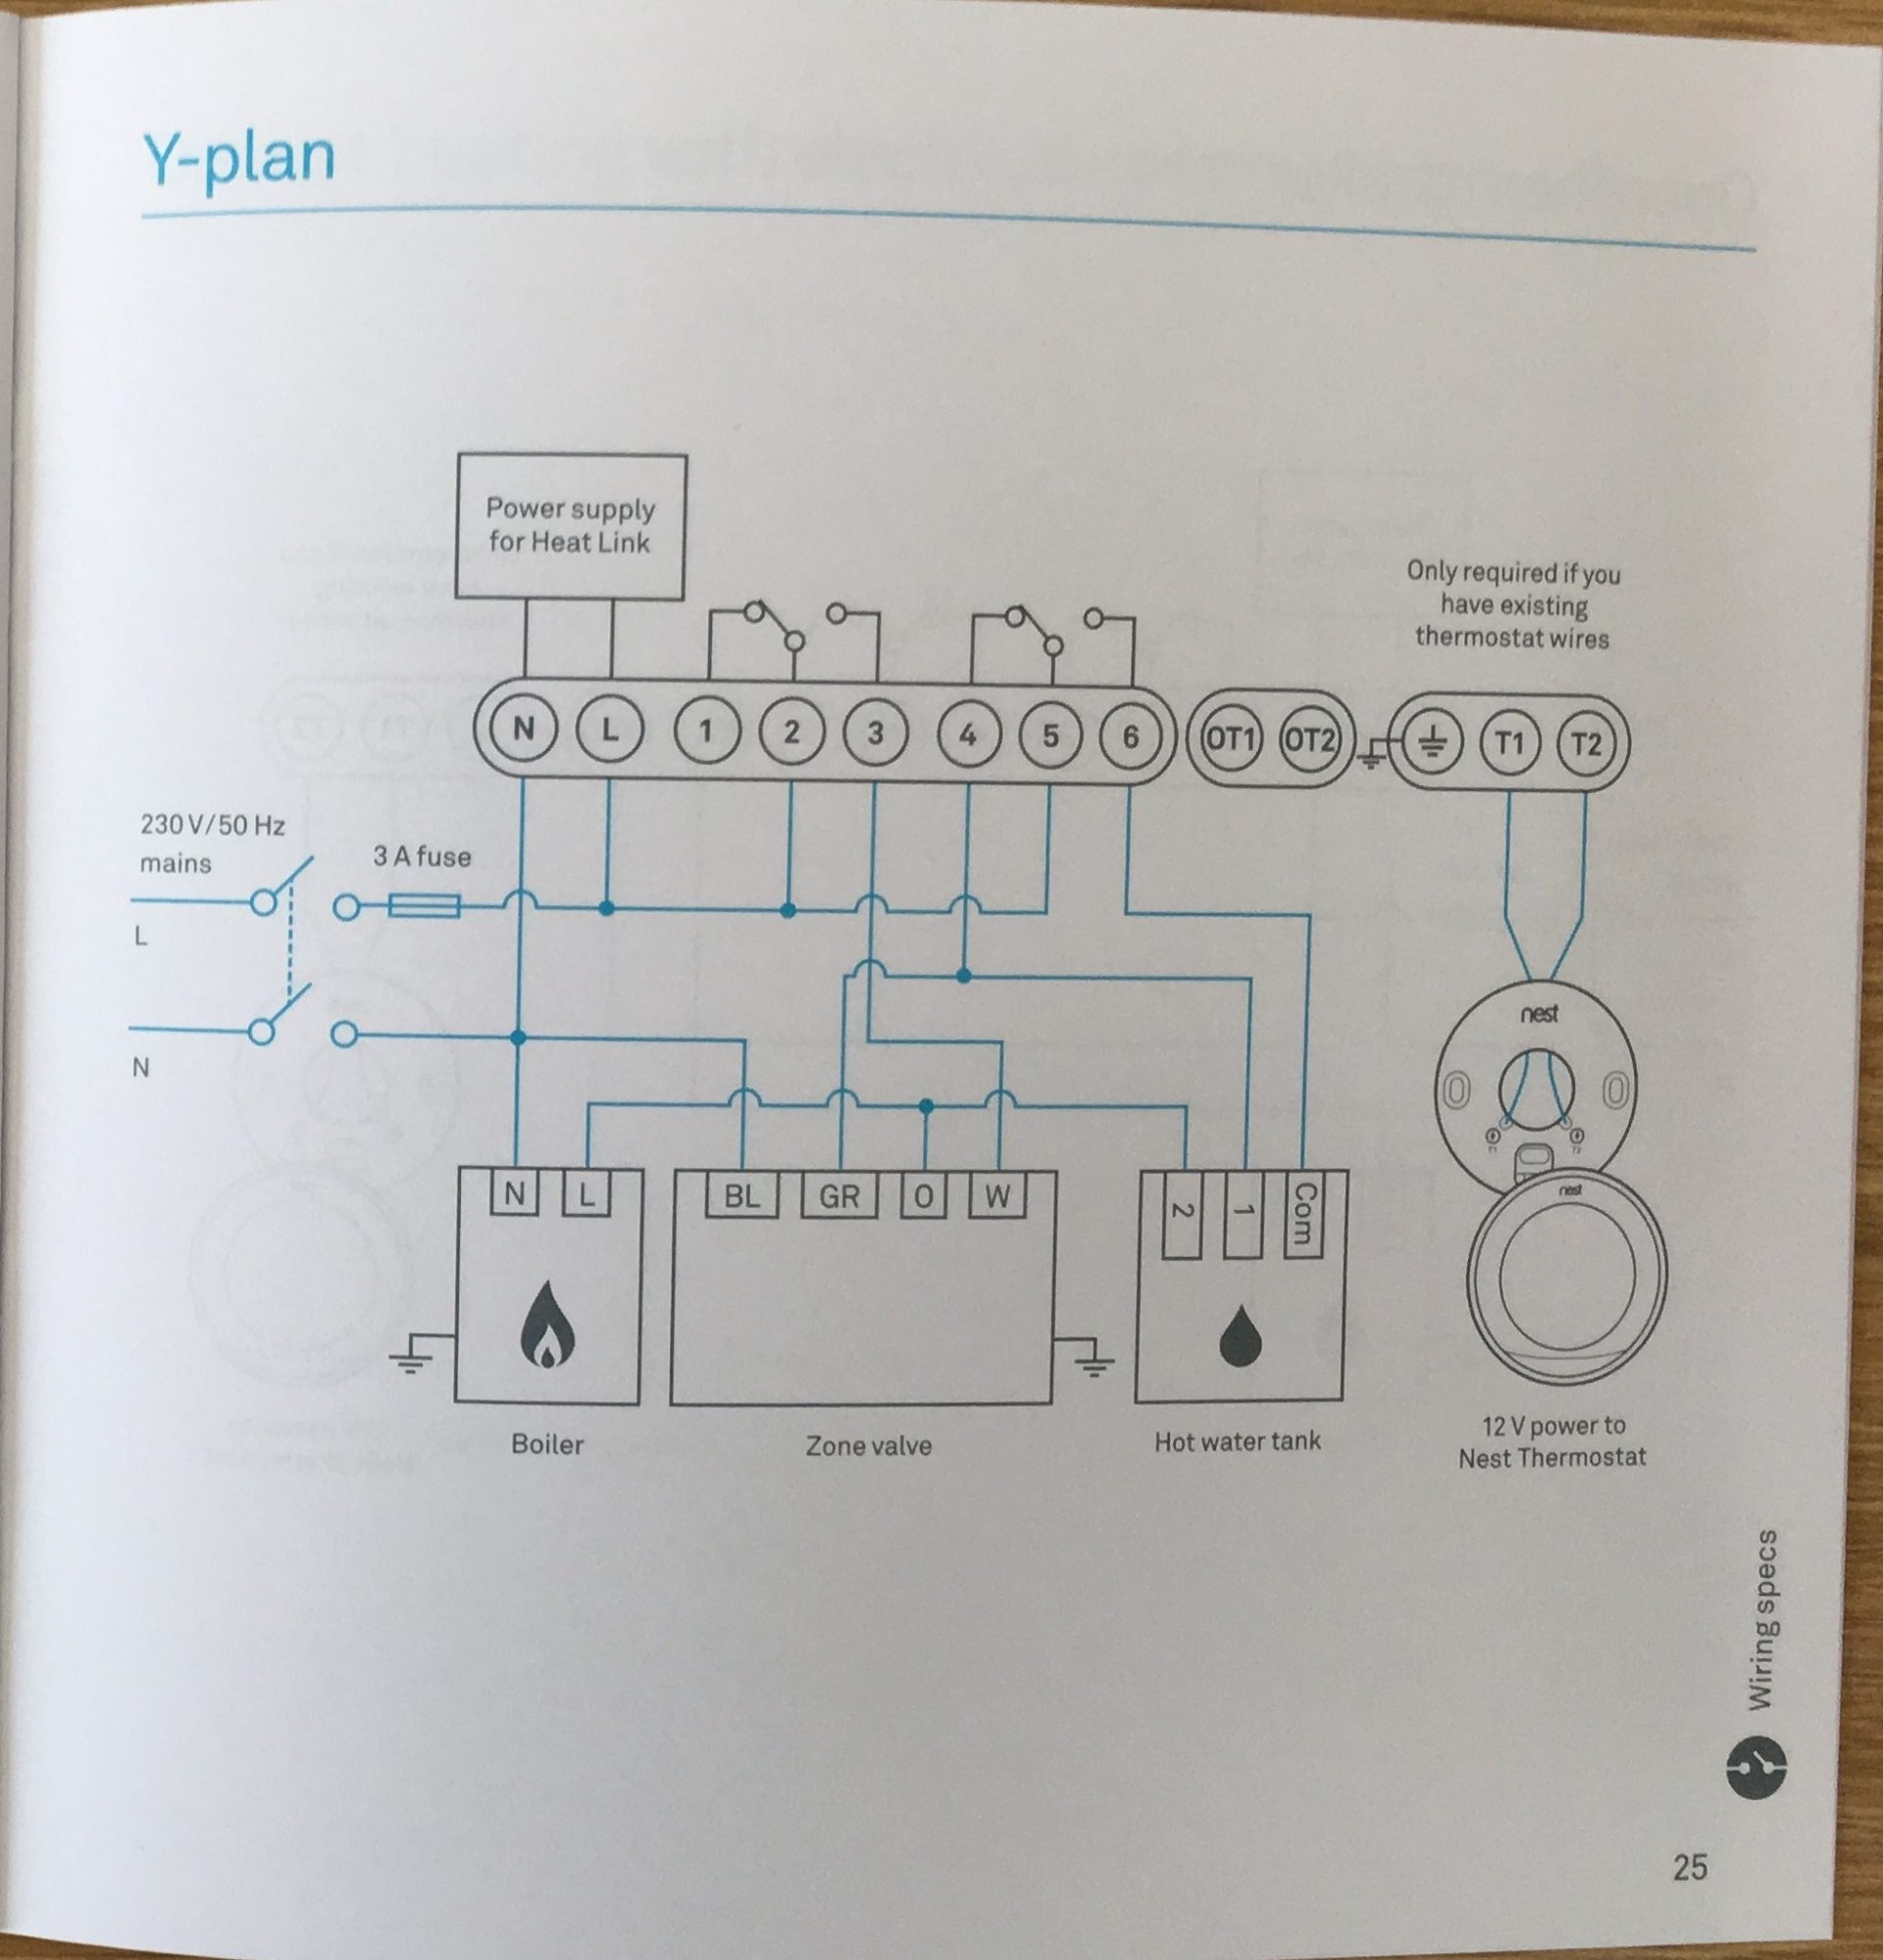 How To Install The Nest Learning Thermostat (3Rd Gen) In A Y-Plan - Nest Stat Wiring Diagram